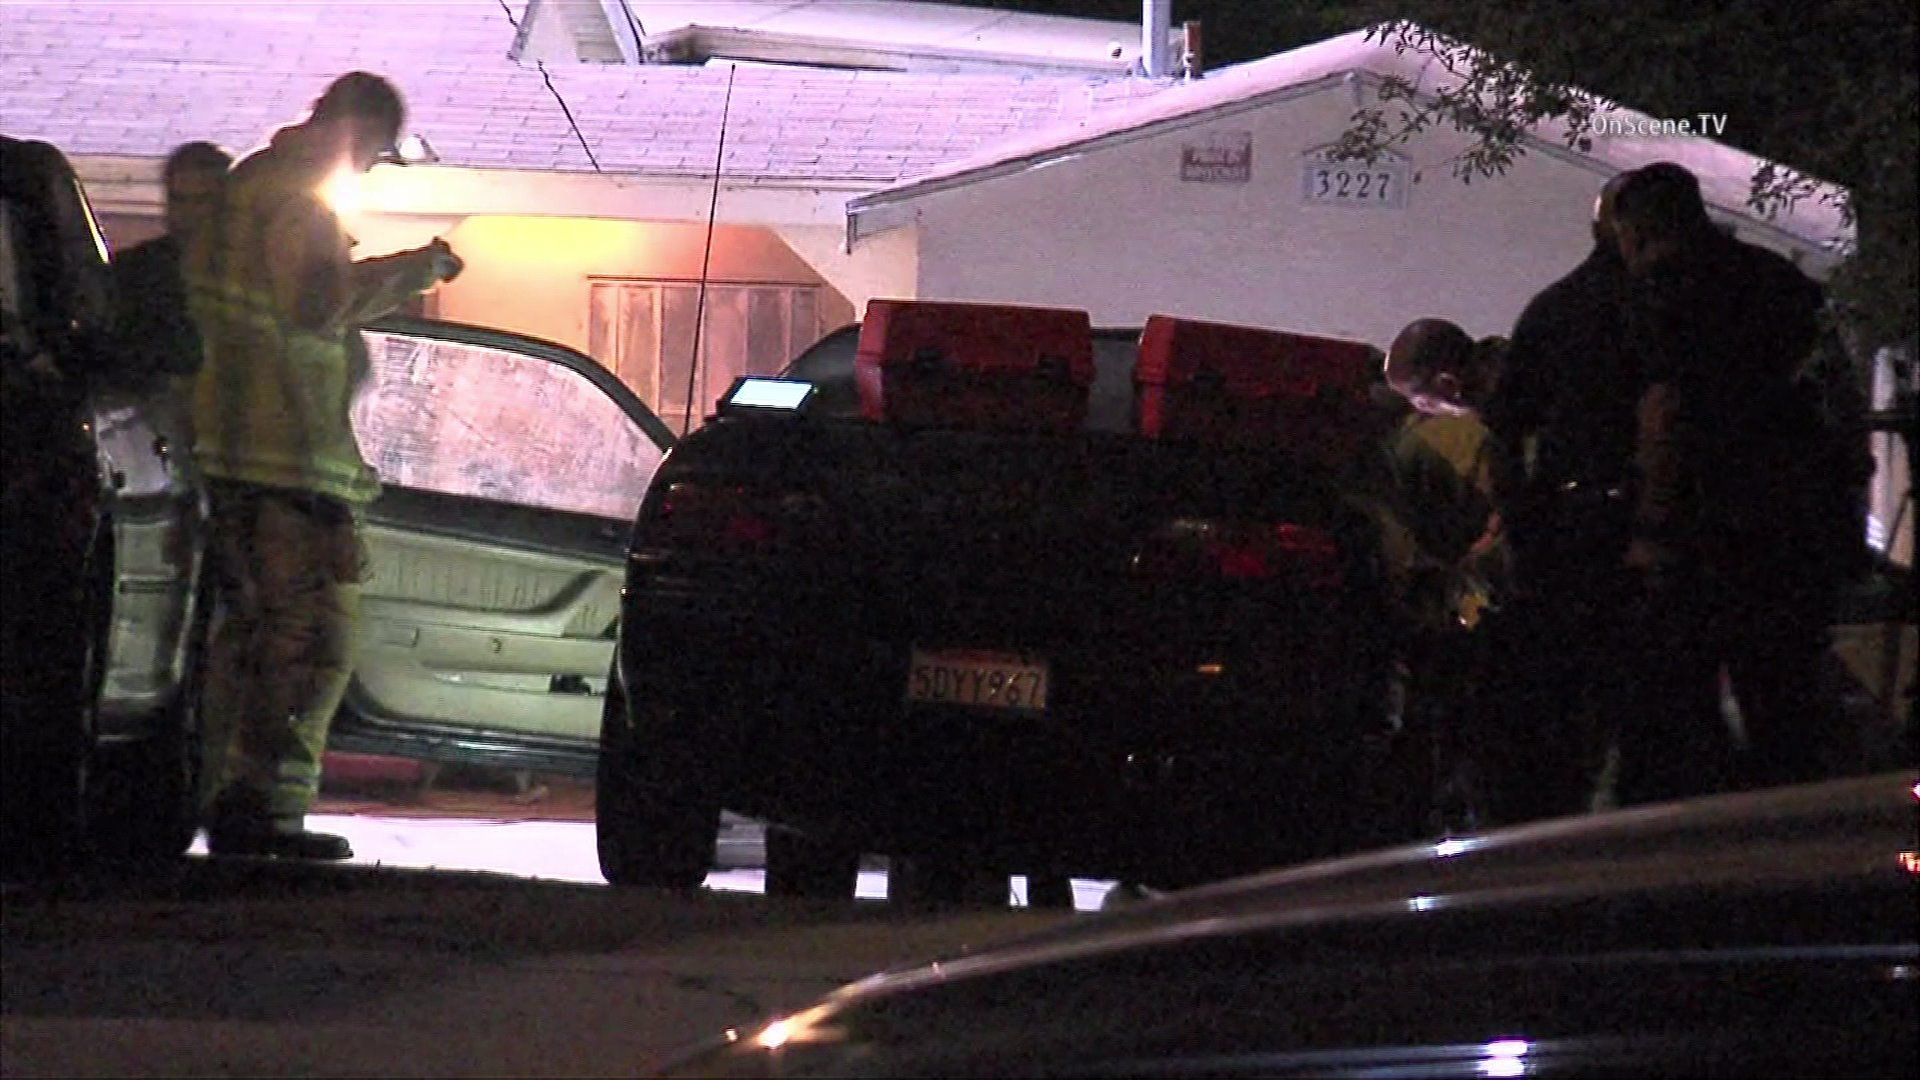 Police responded to a fatal shooting in Glassell Park on Aug. 11, 2015. (Credit: OnScene.TV)